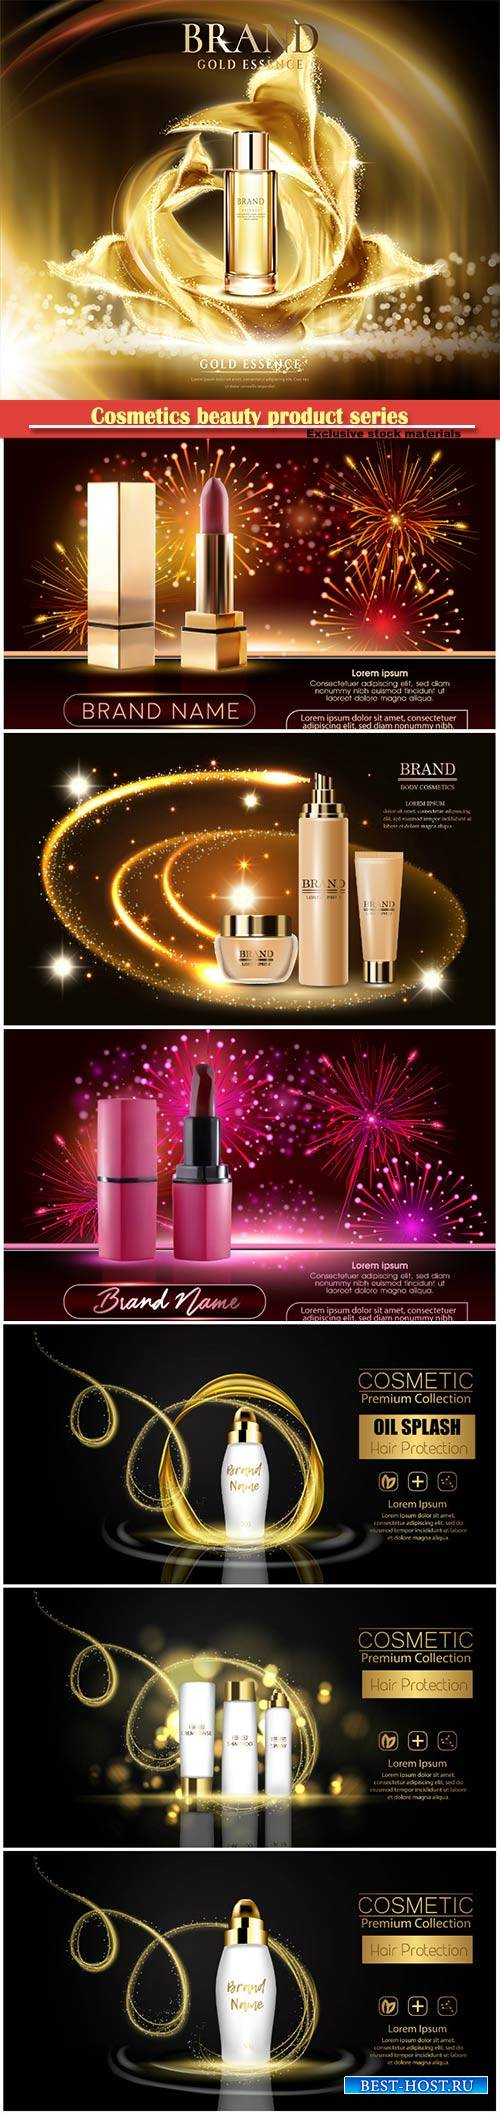 Cosmetics beauty product series, presentation banners mockup, vector illust ...